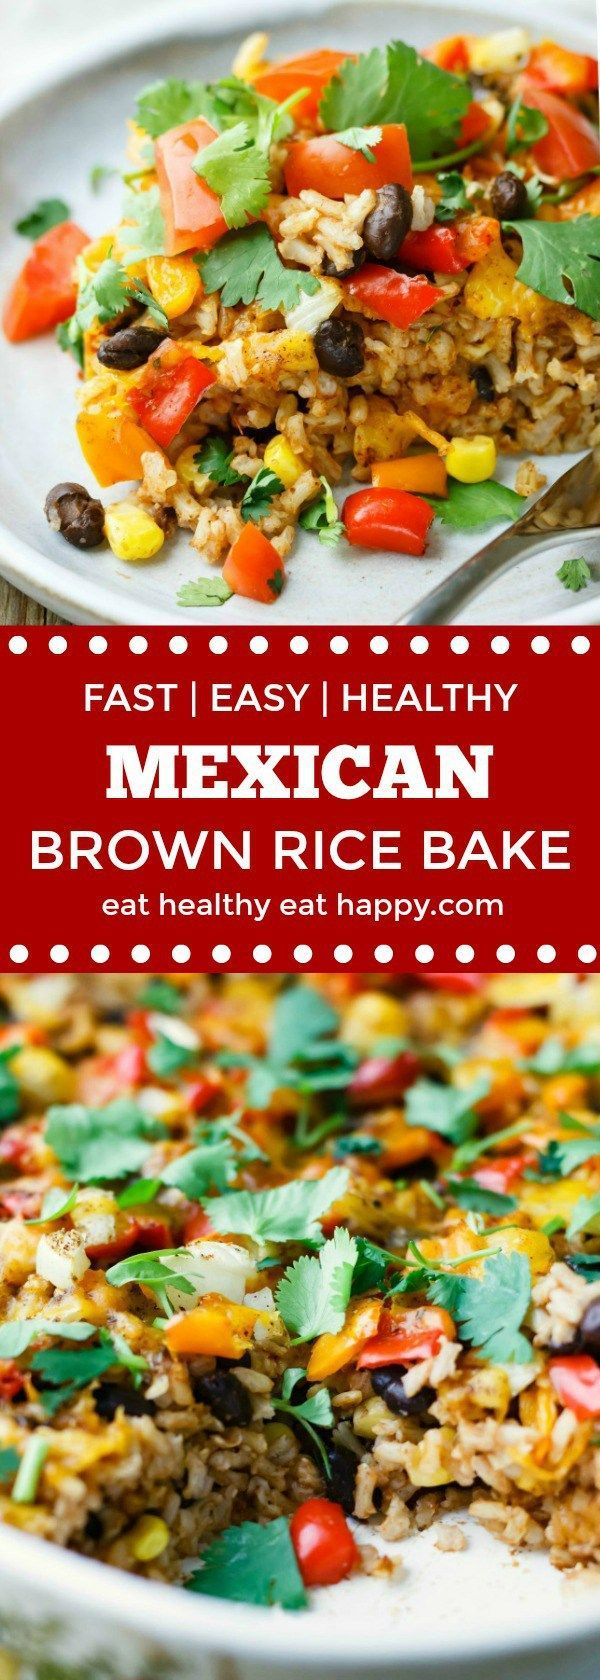 Easy Mexican Brown Rice Bake makes dinner healthy, fast and fun! Vegan, vegetarian, gluten free friendly, clean eating options.